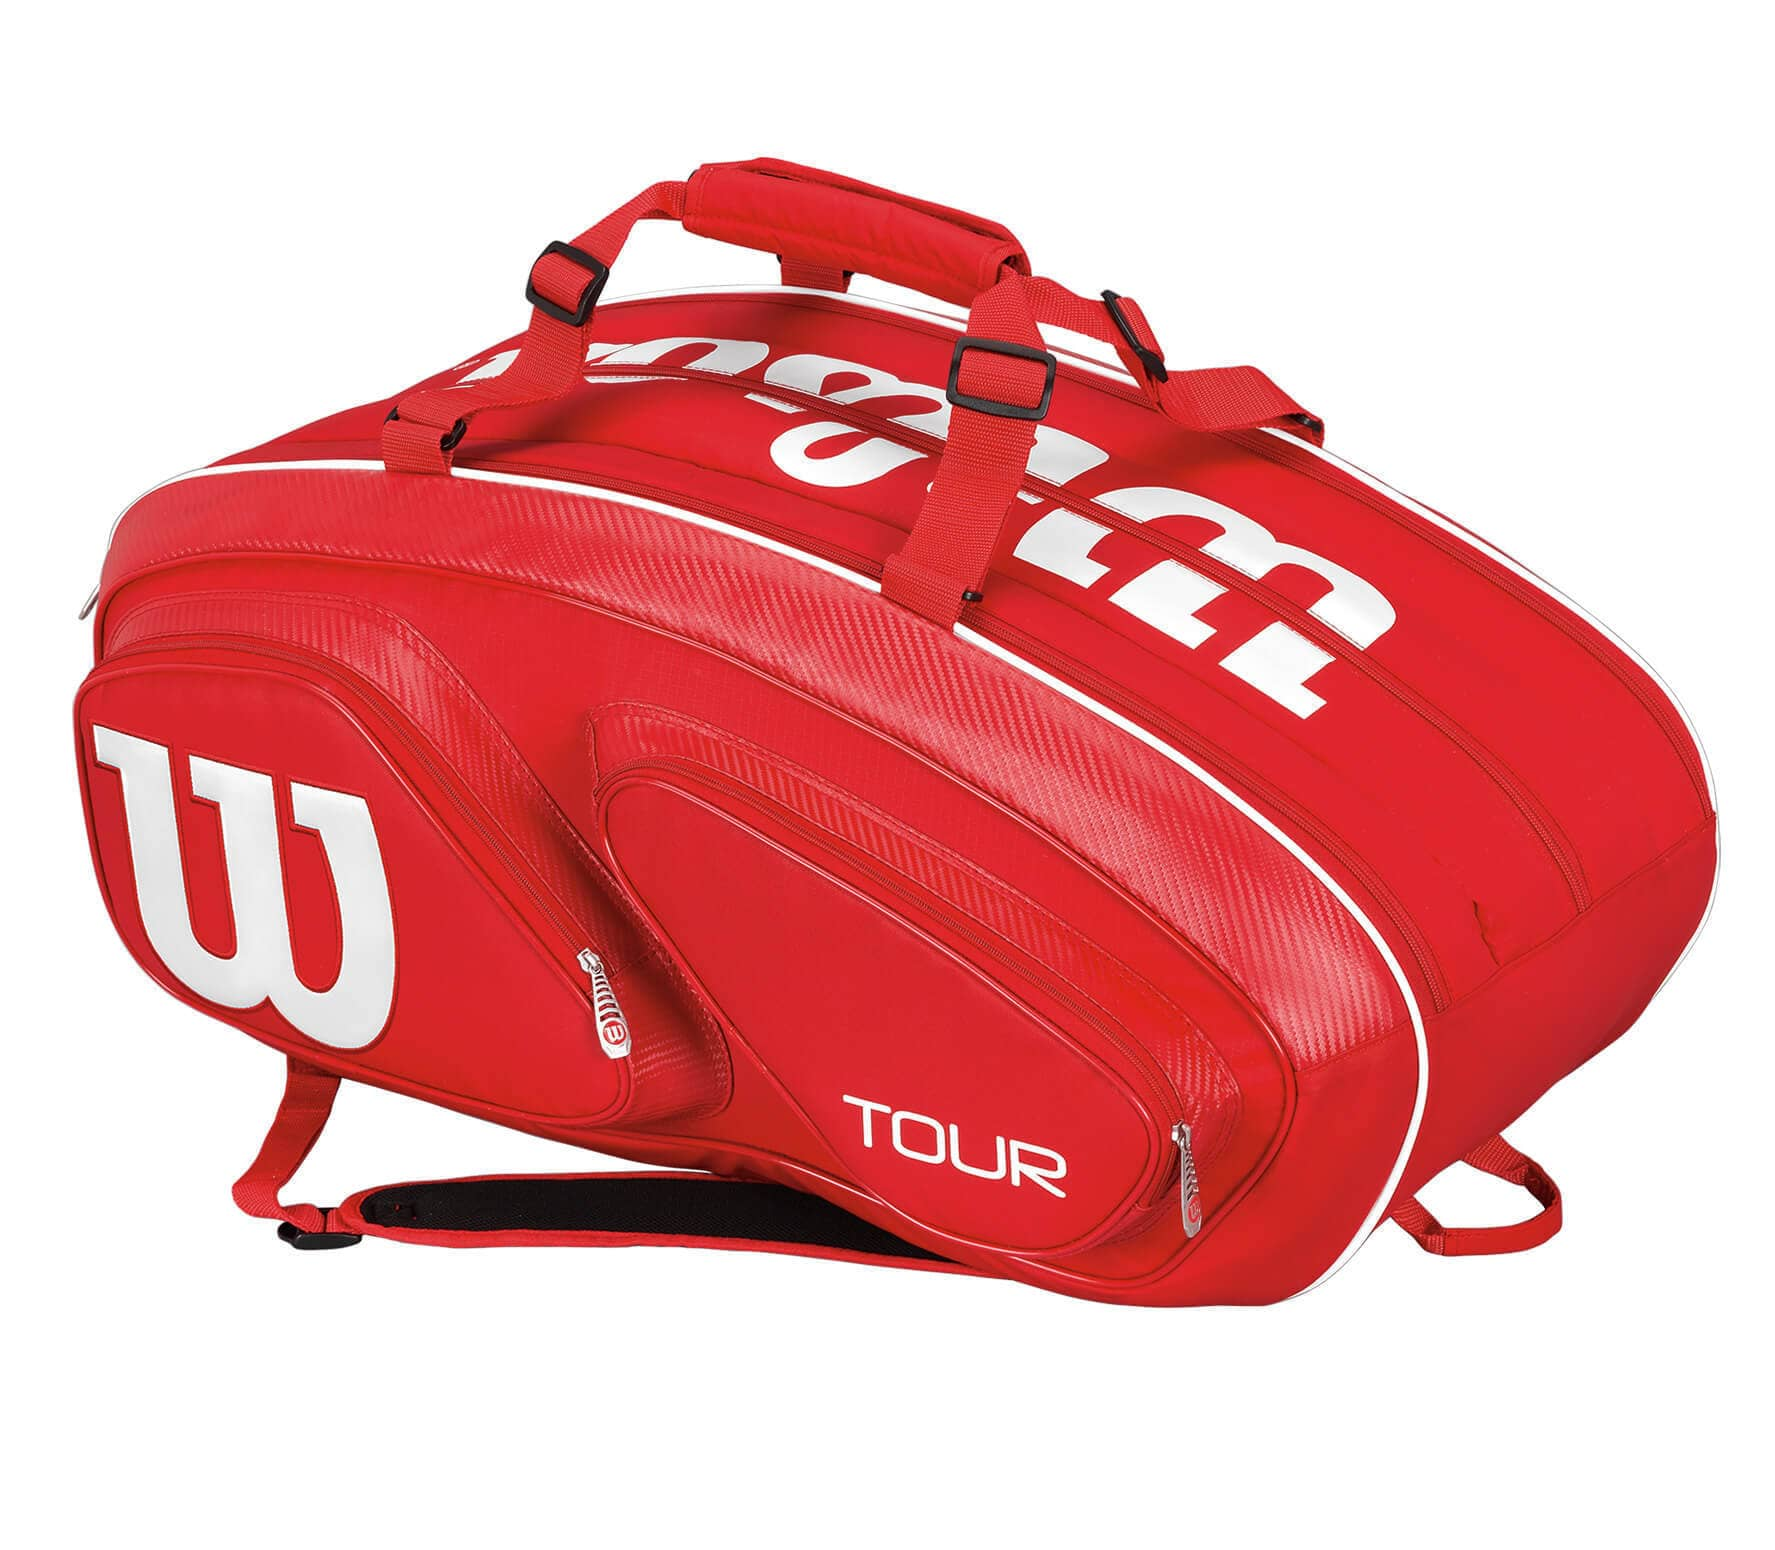 Tour V 15Pk Bag Tennistasche (rot)